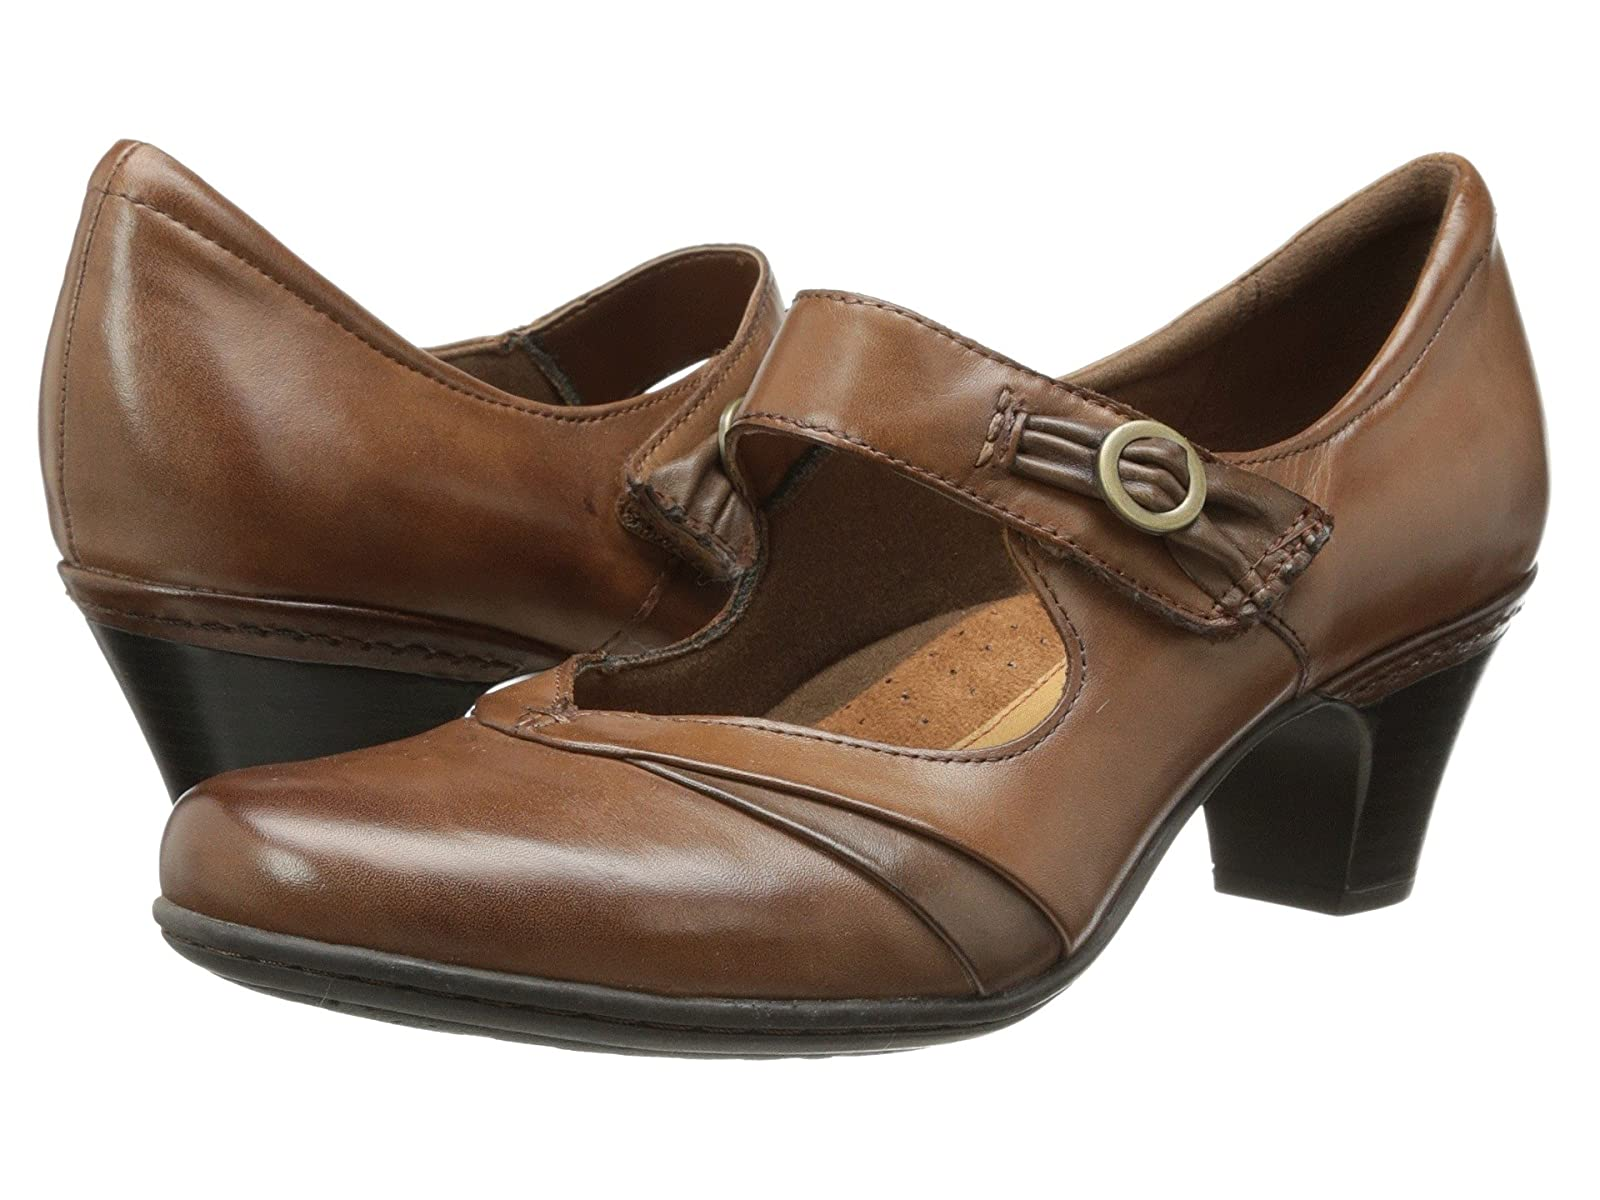 Rockport Cobb Hill Collection Cobb Hill SalmaCheap and distinctive eye-catching shoes